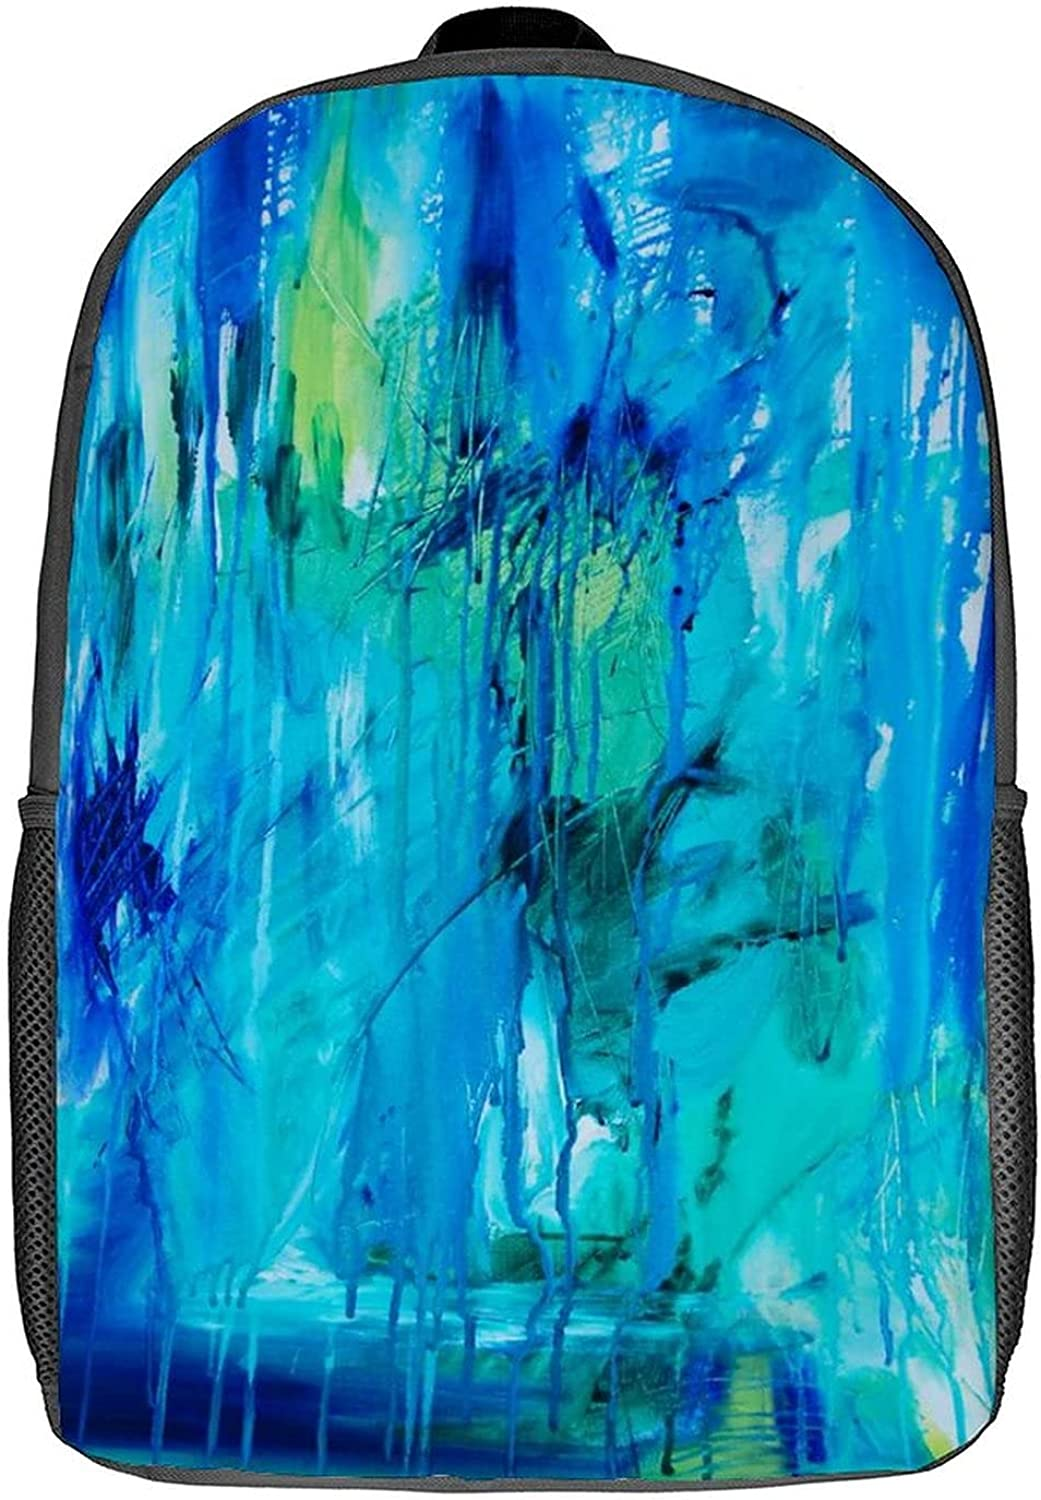 Backpack Watercolor Abstract Custom Small Ranking TOP10 Department store 17inch Laptop